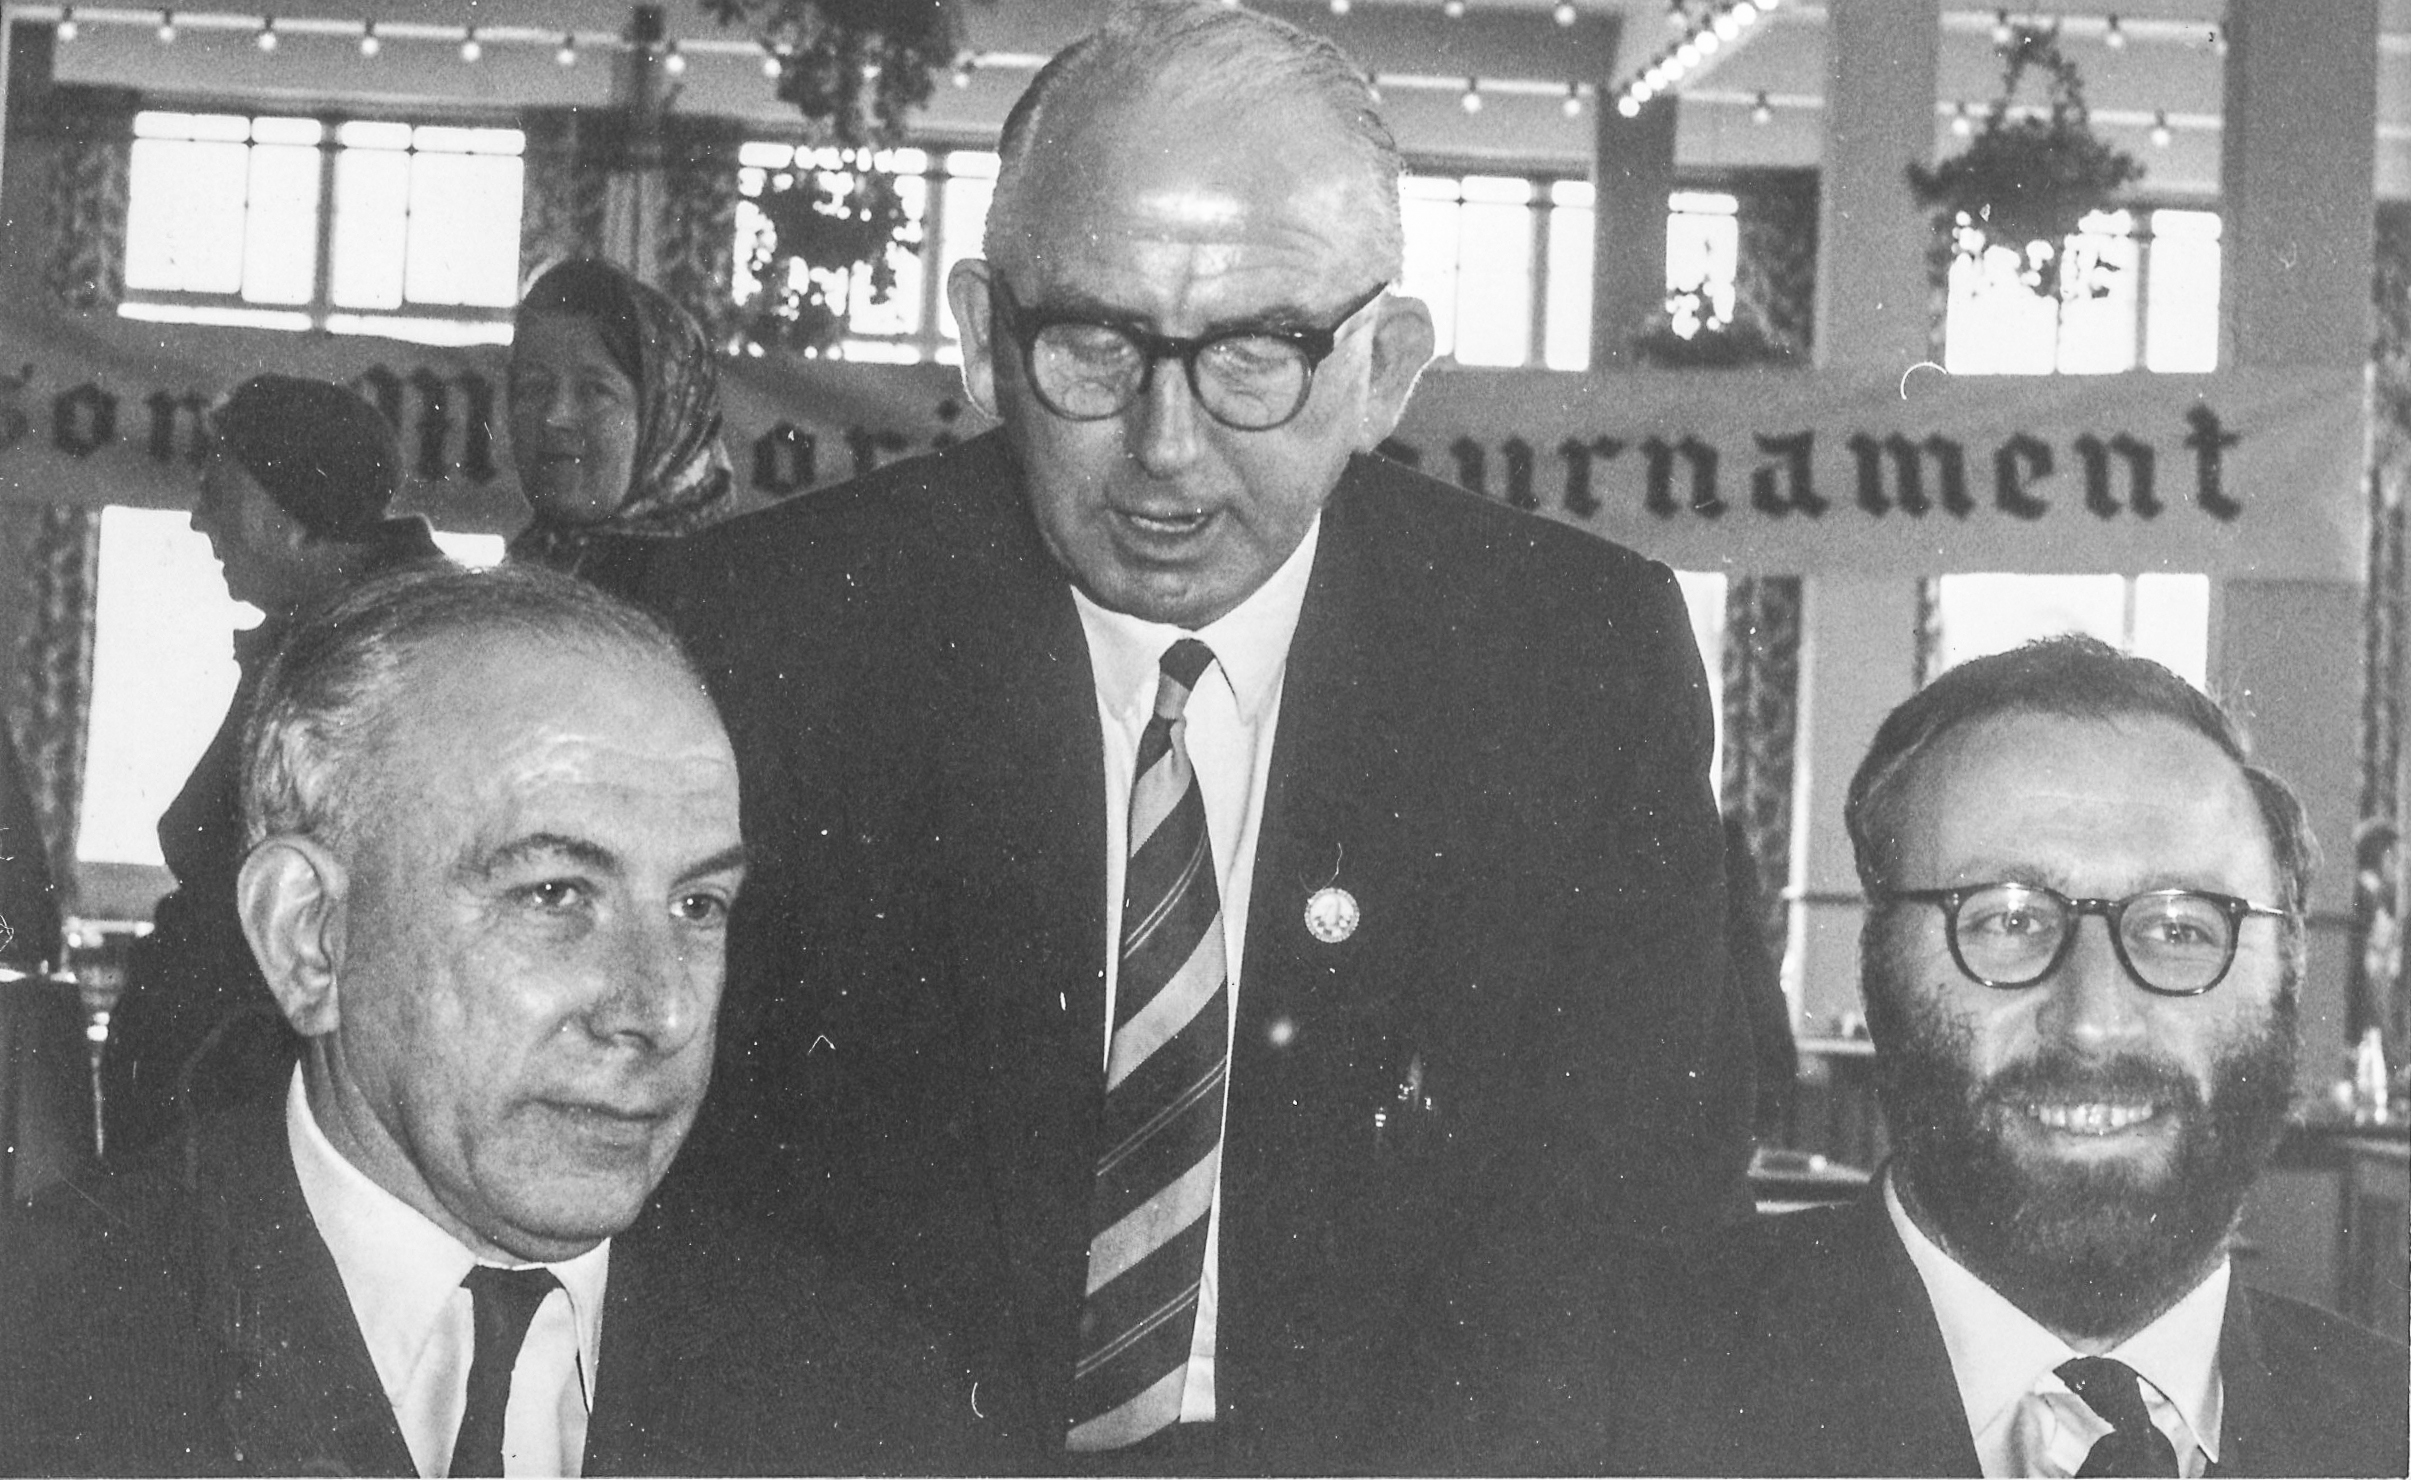 Harry Golombek, Norman Fishlock-Lomax and Denis Victor Mardle at the Stevenson Memorial Tournament at Bognor Regis, 1969 (?)